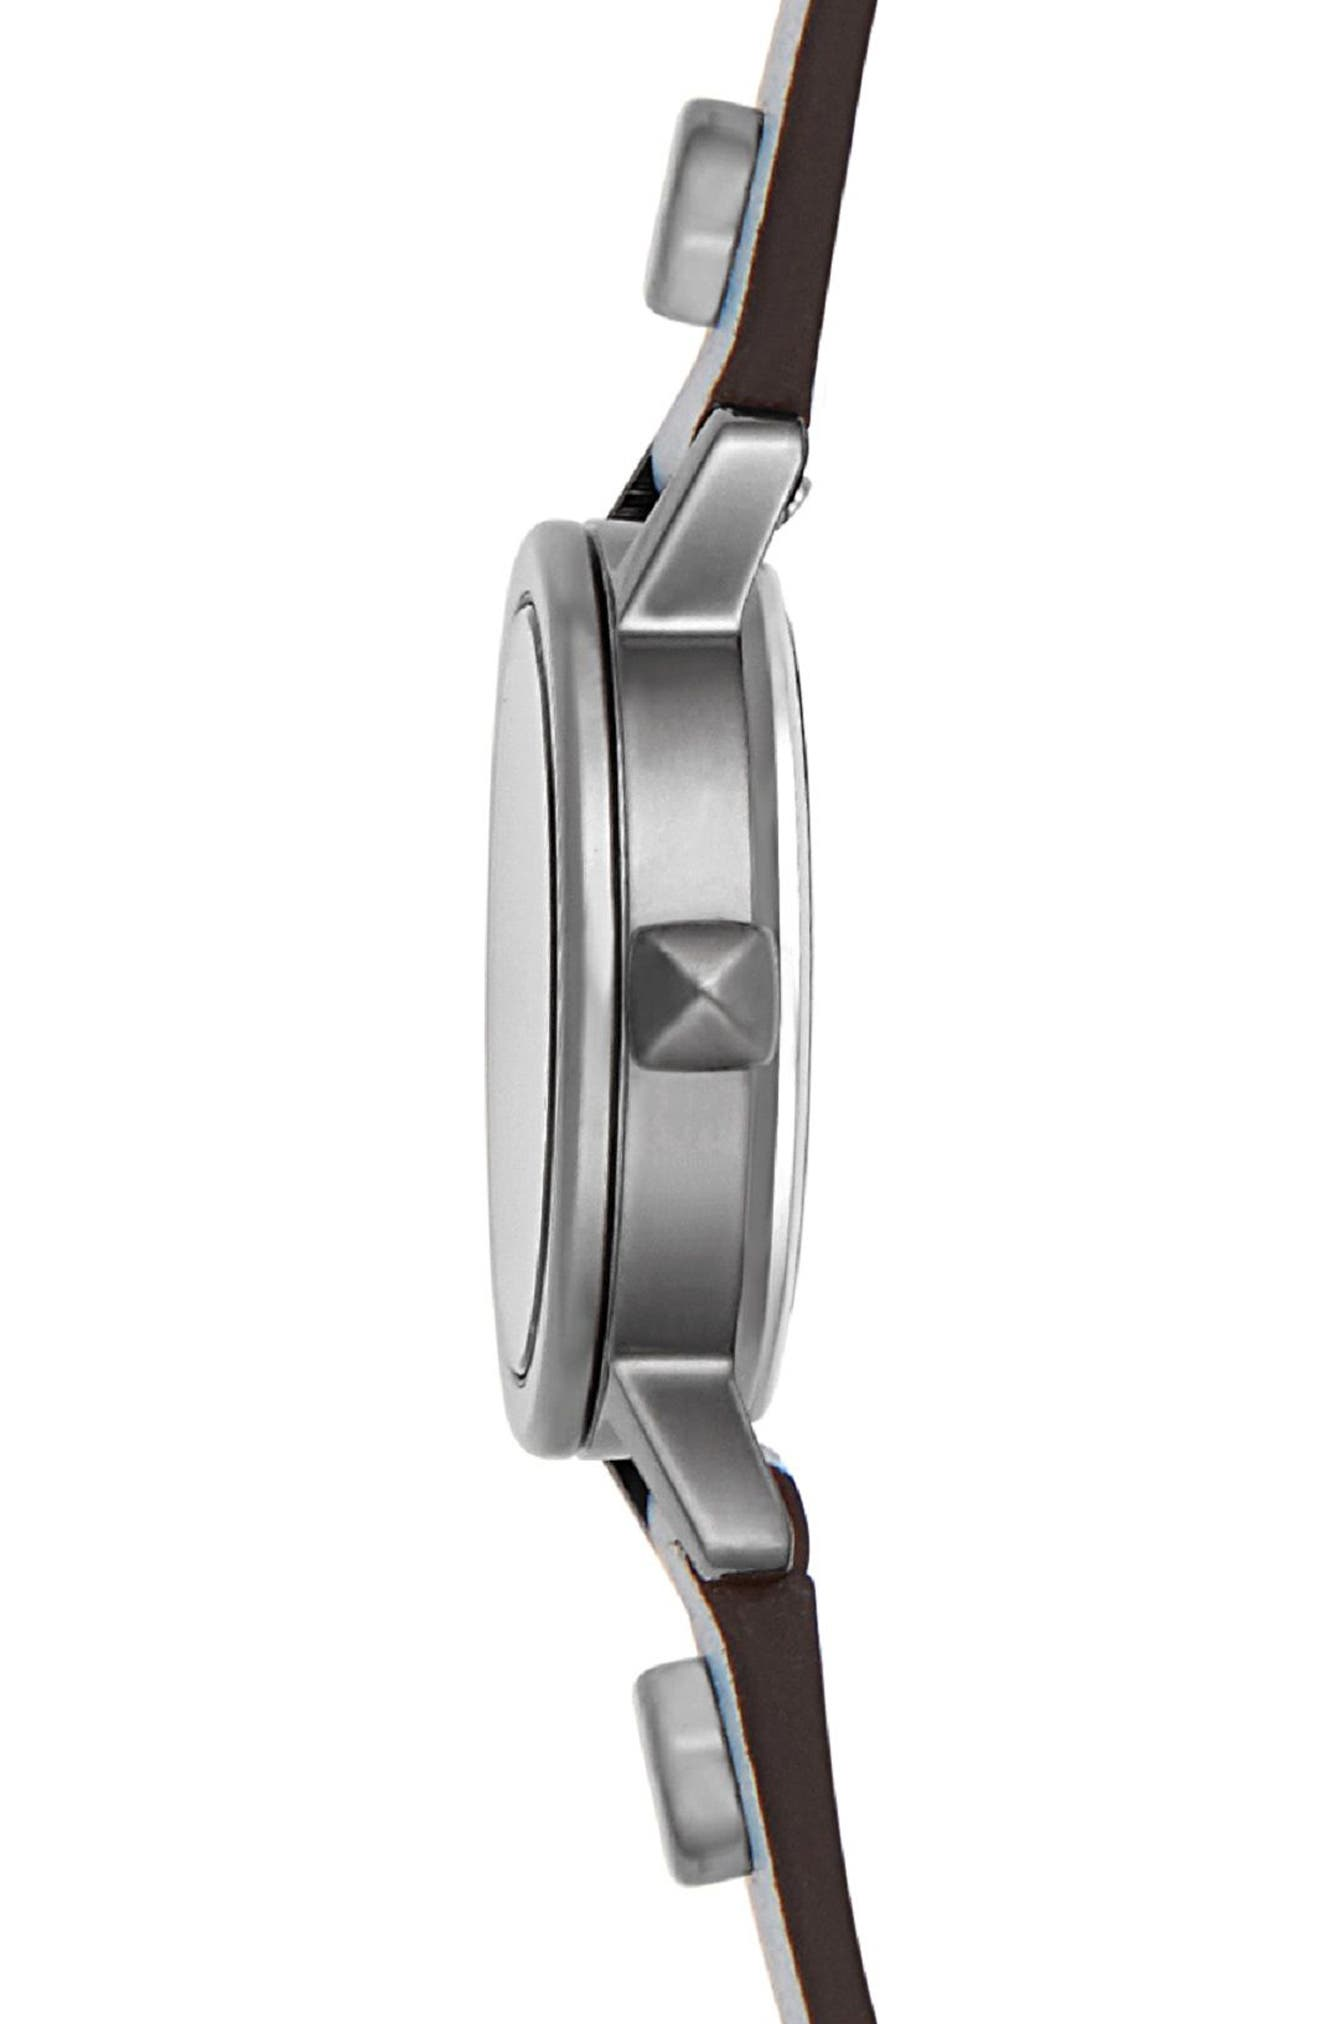 REBECCA MINKOFF,                             BFFLS Double Wrap Leather Strap Watch, 25mm,                             Alternate thumbnail 3, color,                             400